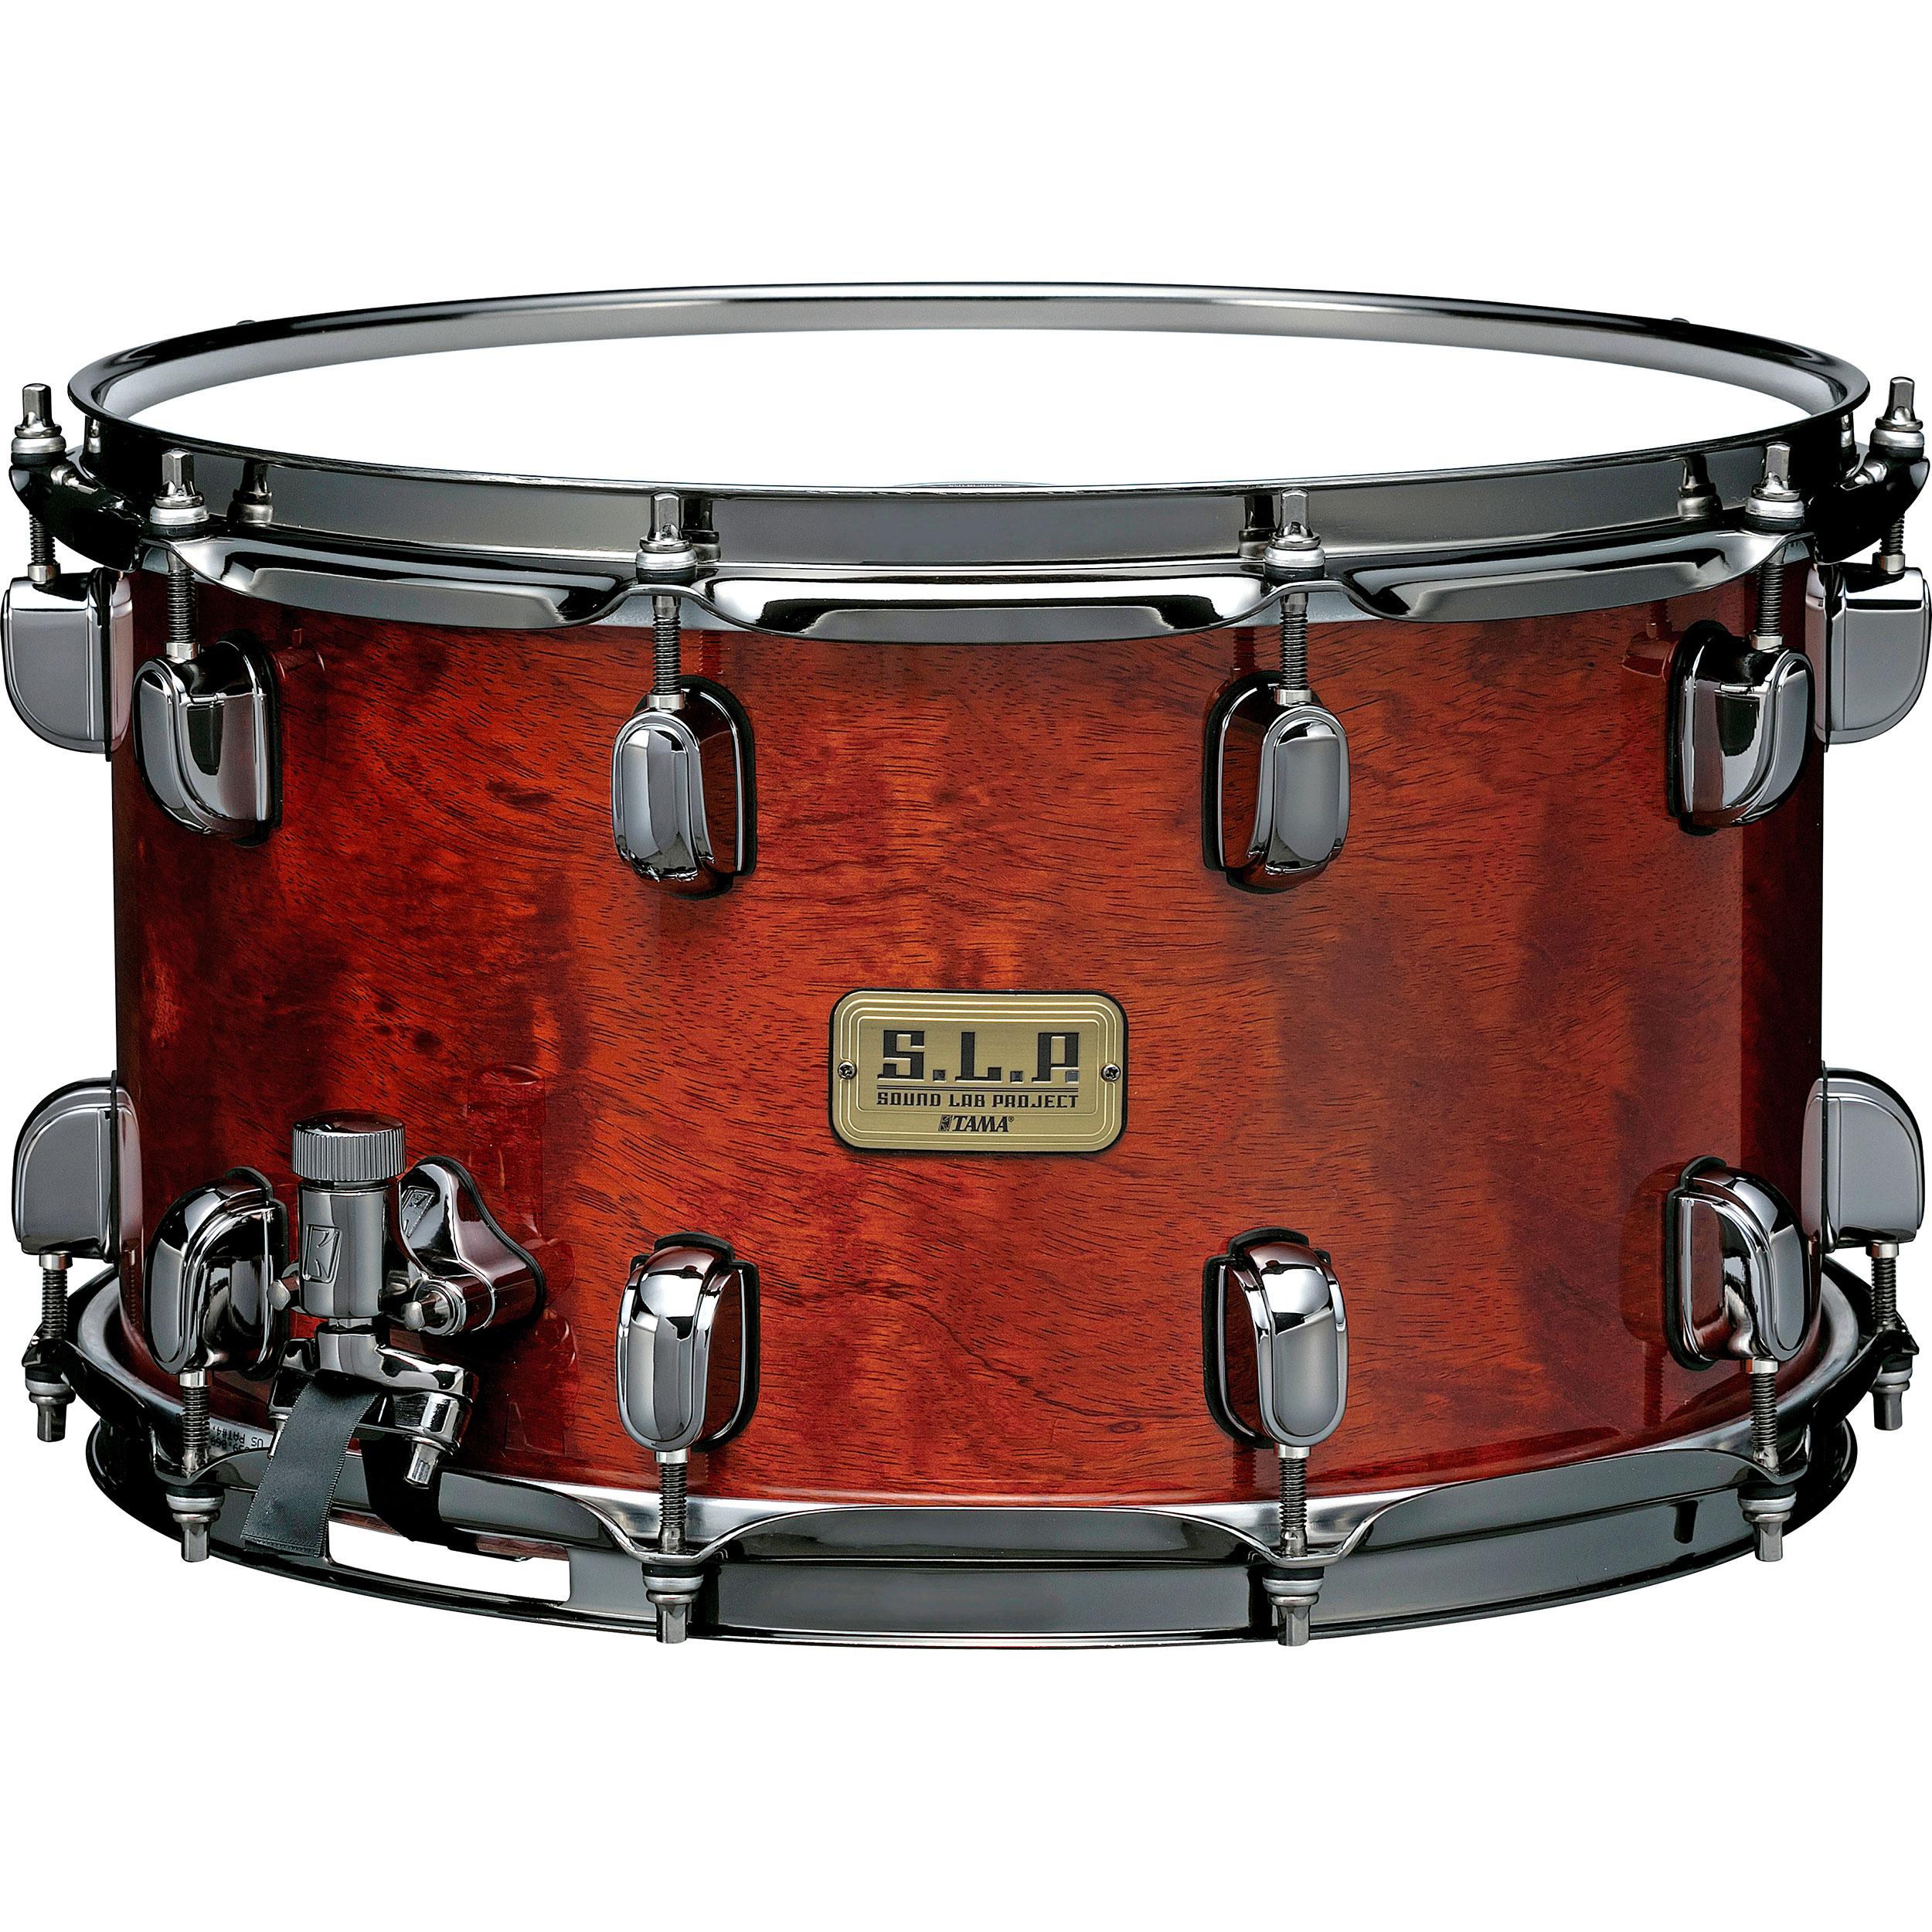 "Tama 8"" x 14"" Limited Edition S.L.P. G-Bubinga Snare Drum in Natural Quilted Bubinga"